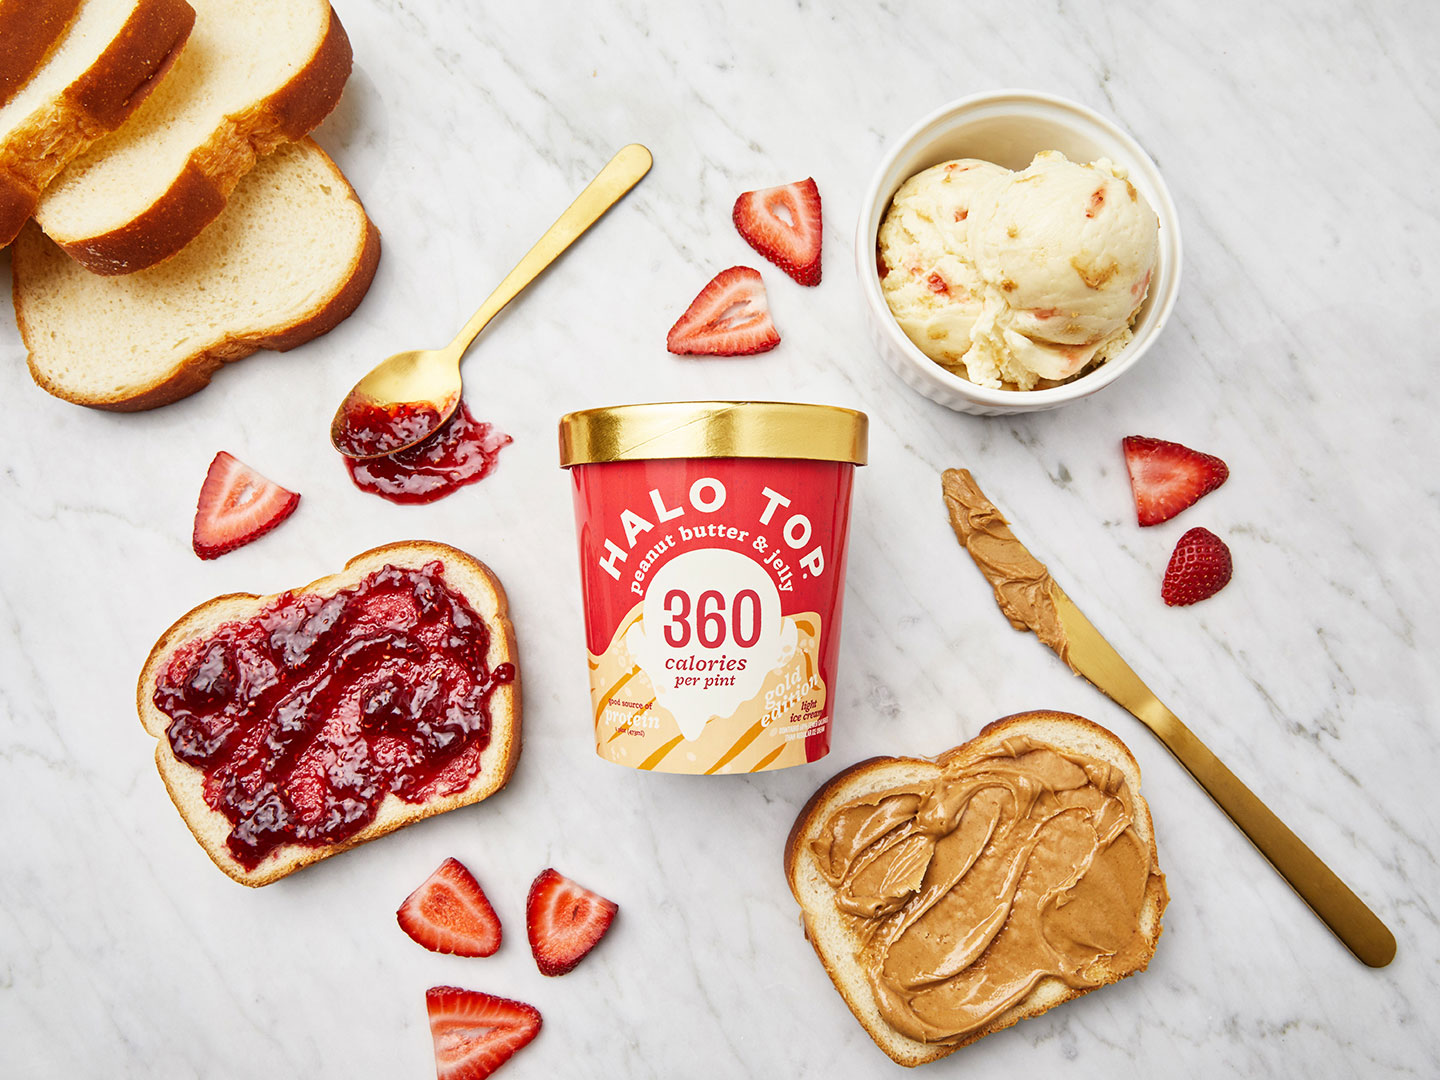 Peanut Butter and Jelly Halo Top